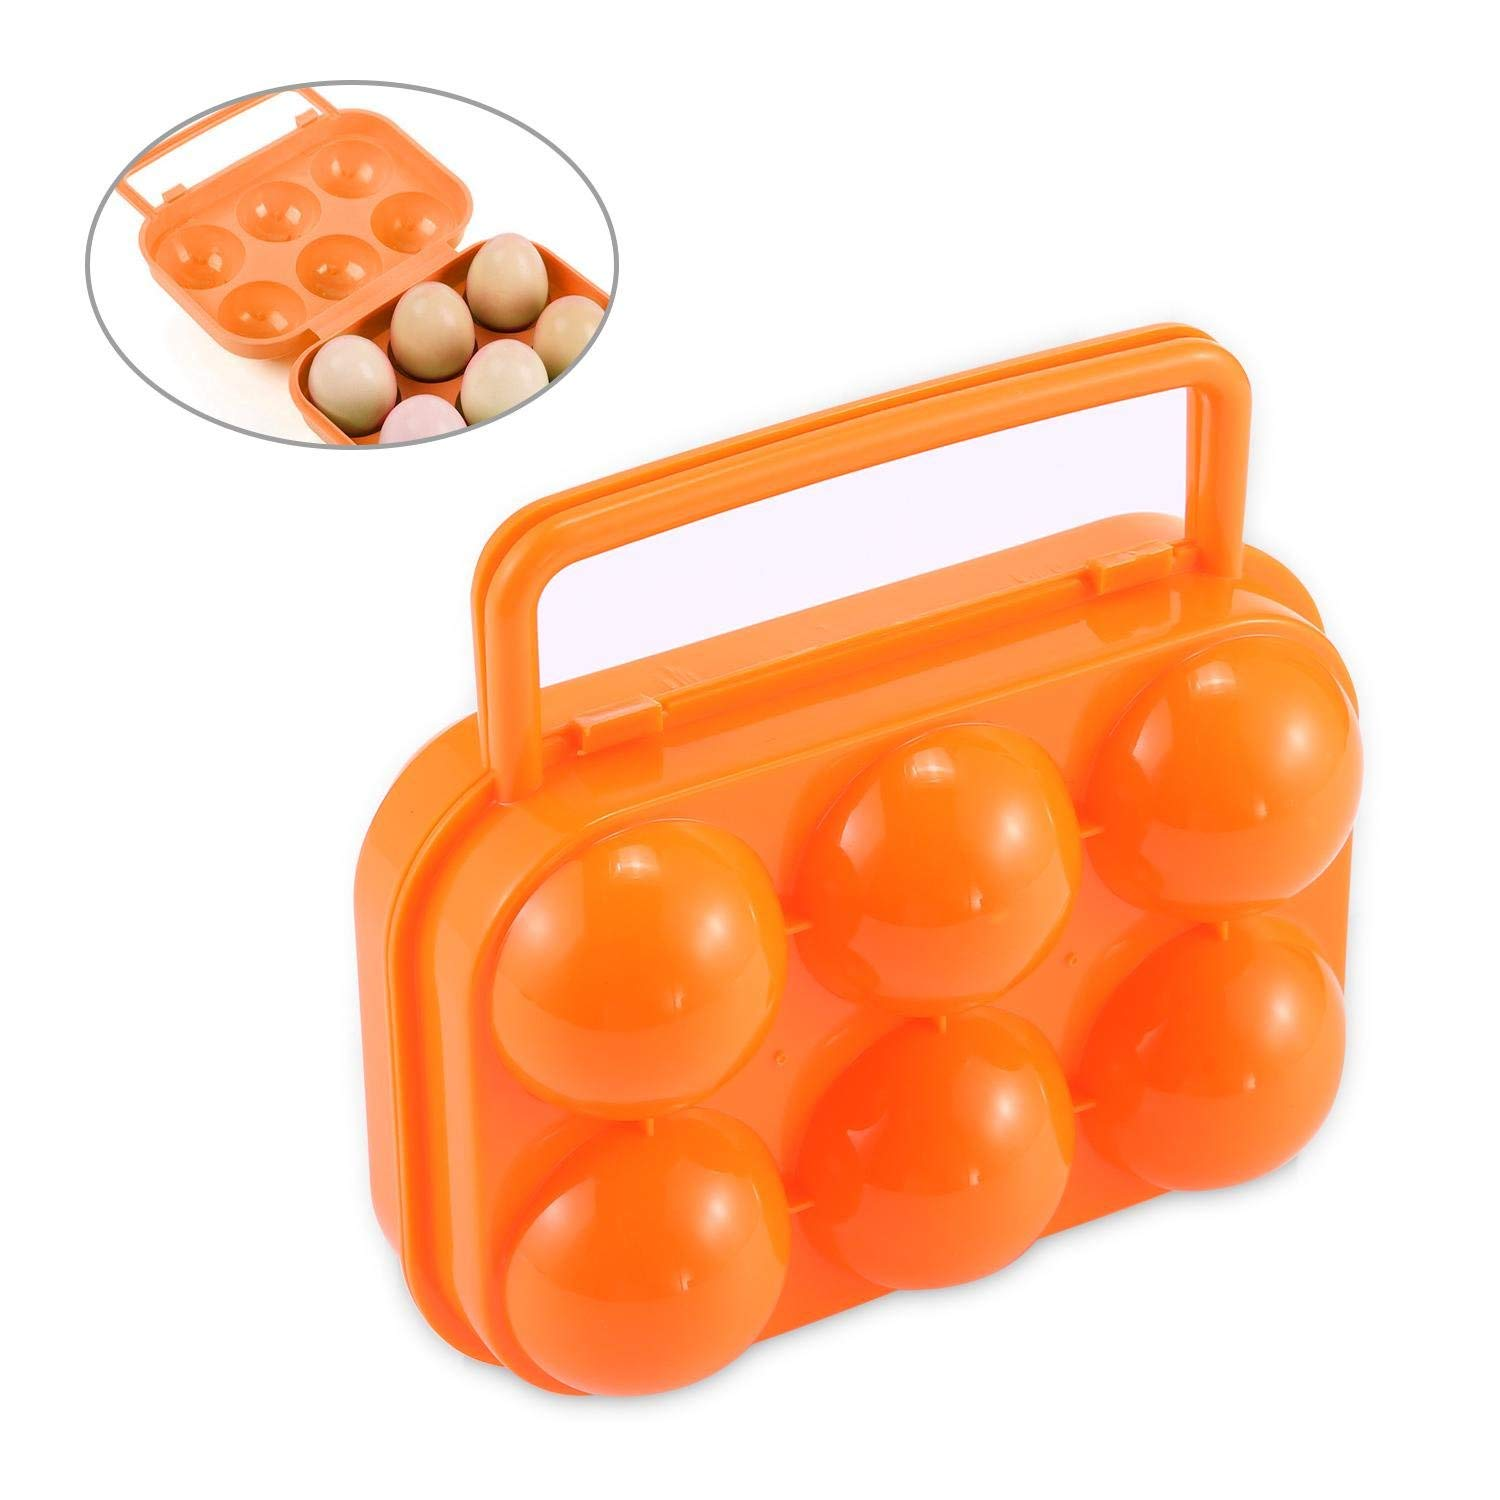 Pawaca Eggs Holder, Egg Tray/Keeper/Storage Box/Carrier/Container/Case 6 Eggs Large Capacity Shockproof Crisper Box Case with Handle for Kitchen Outdoor Picnic